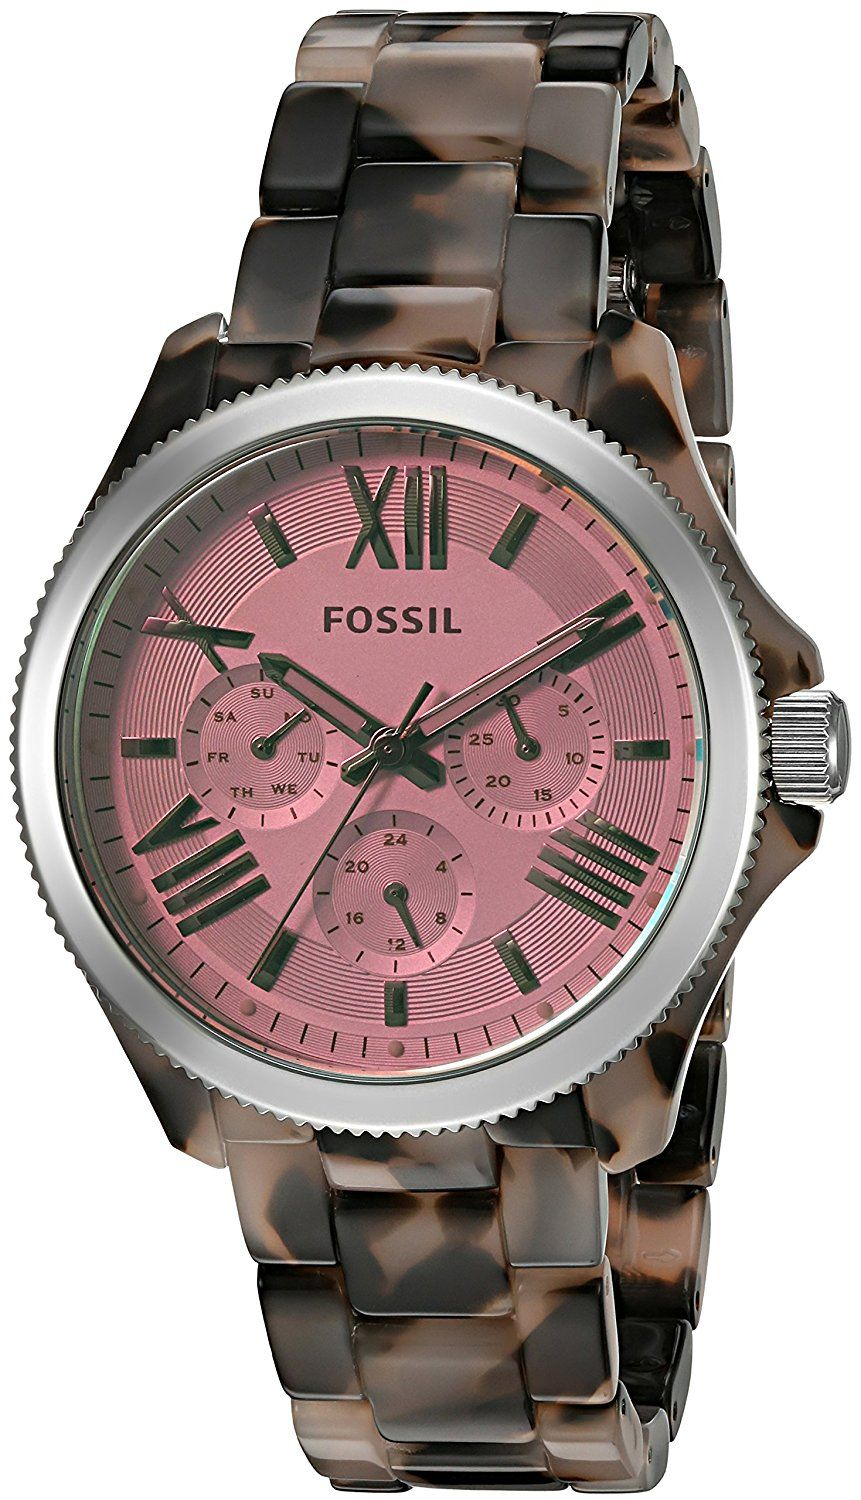 Fossil Watches For Women Black Dede14 Virginia Stainless Steel And Acetate Watch Es 3918 Womens Am4643 Cecile Multifunction Tortoise You Can Get Additional